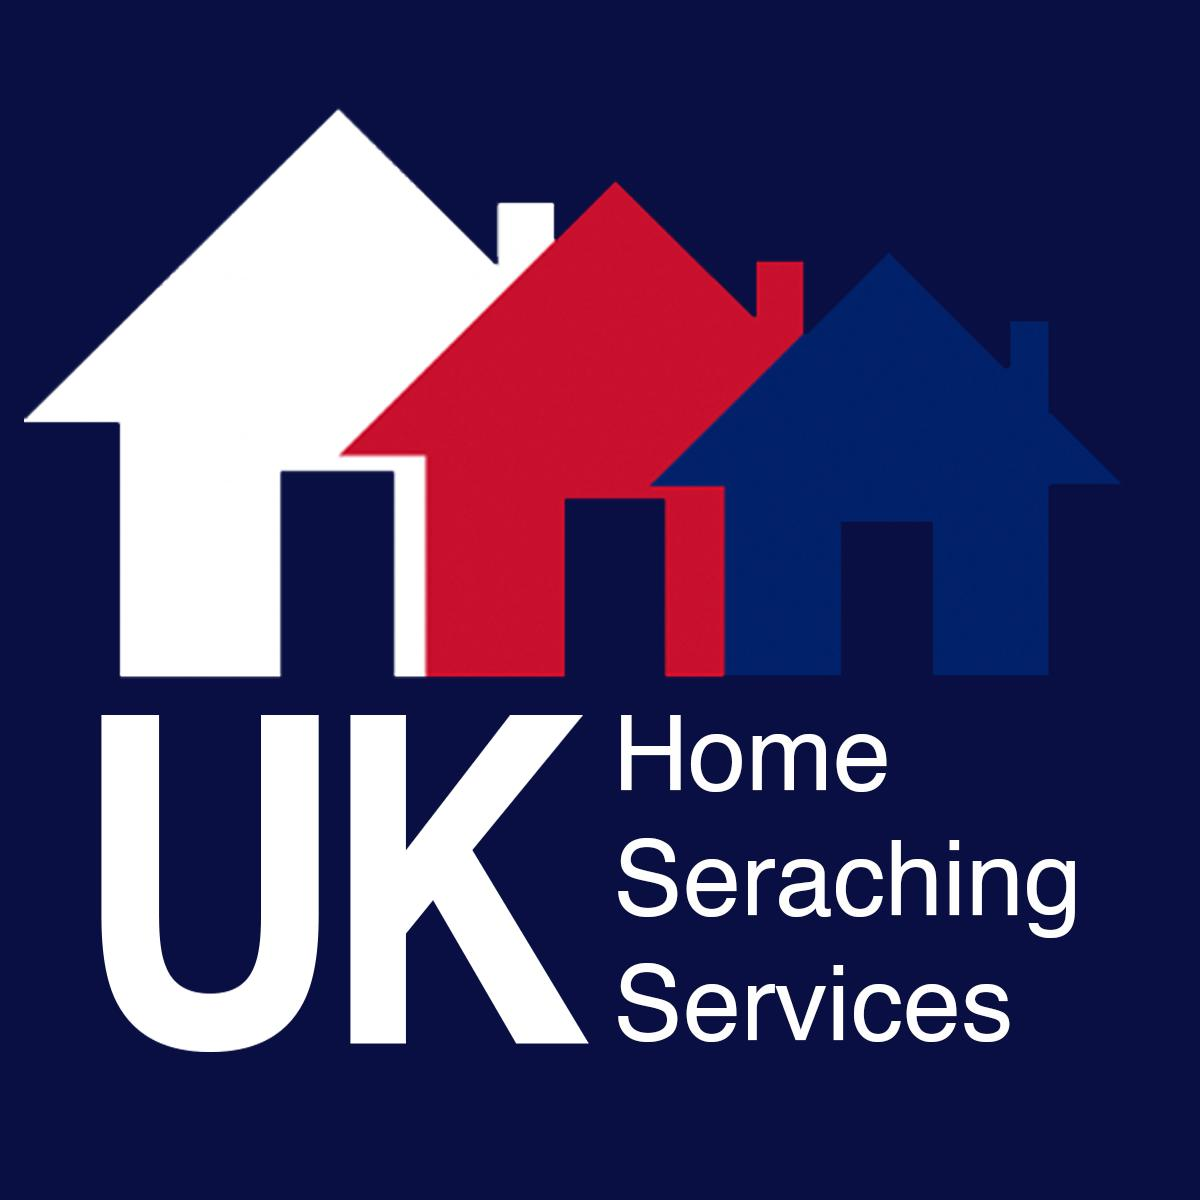 UK Home Searching Services Logo